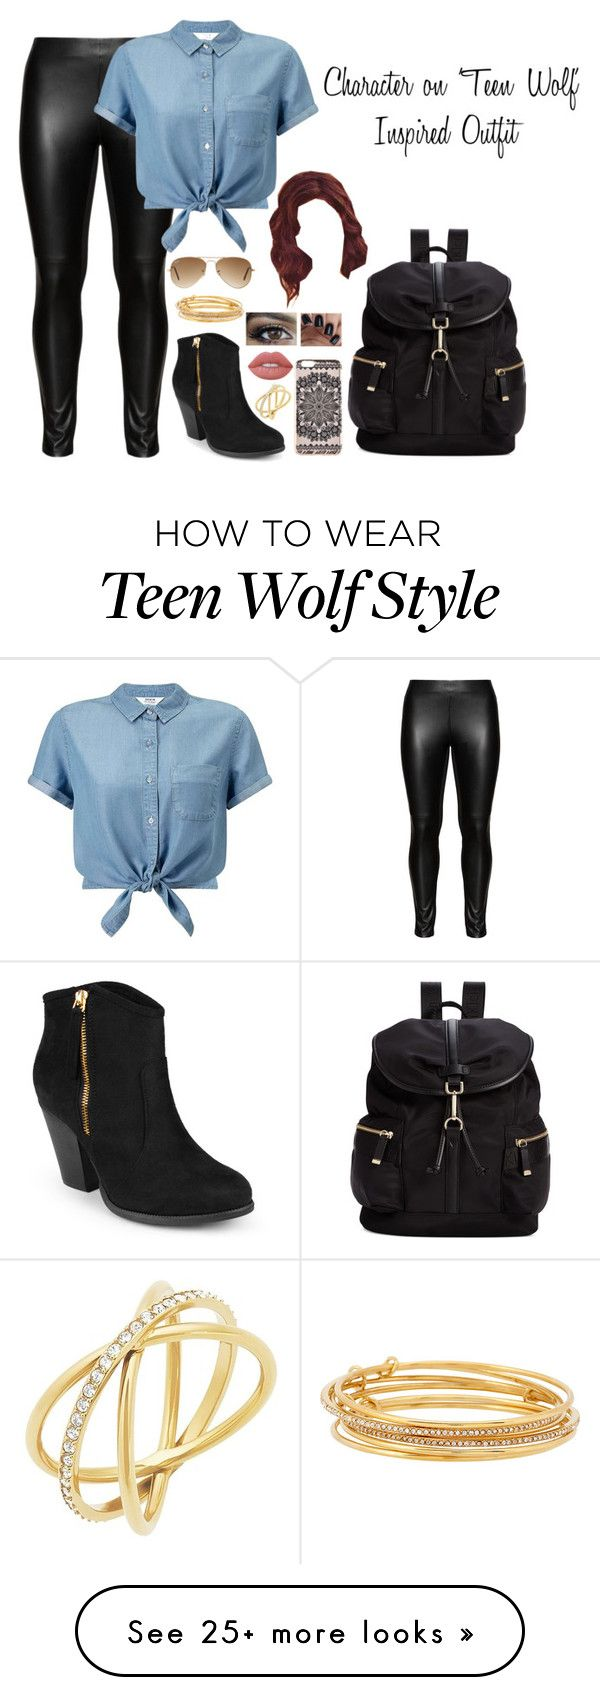 """Character on 'Teen Wolf' Inspired Outfit"" by a-torres2018 on Polyvore featuring Studio, Miss Selfridge, Michael Kors, Journee Collection, Calvin Klein, New Look, Ray-Ban, Kate Spade, Lime Crime and Inspired"